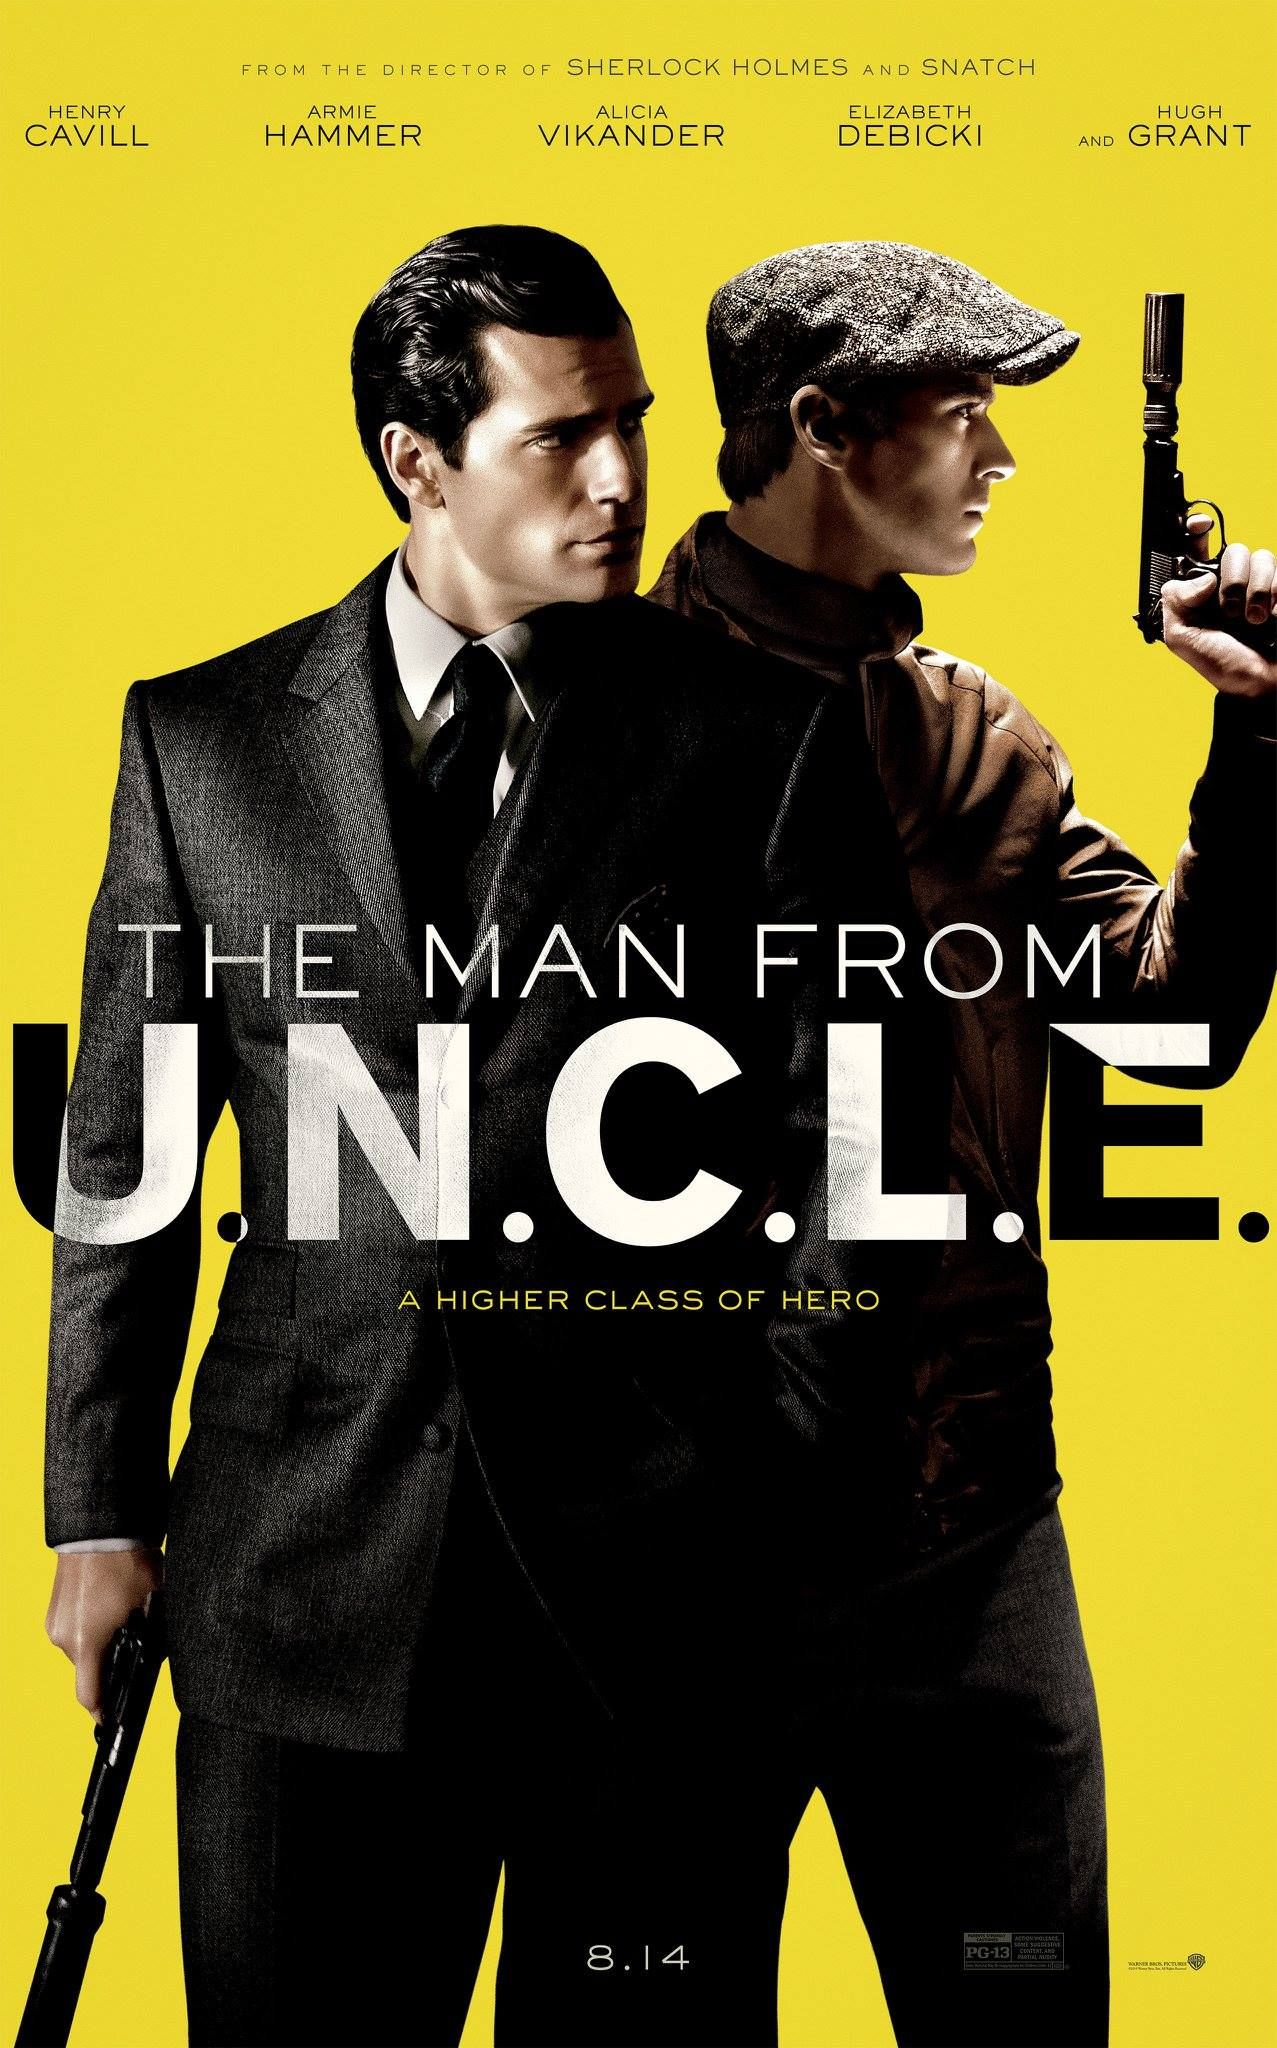 Meet the new men from U.N.C.L.E.: Henry Cavill as Napoleon Solo and Armie Hammer as Illya Kuryakin. | The Man from U.N.C.L.E.